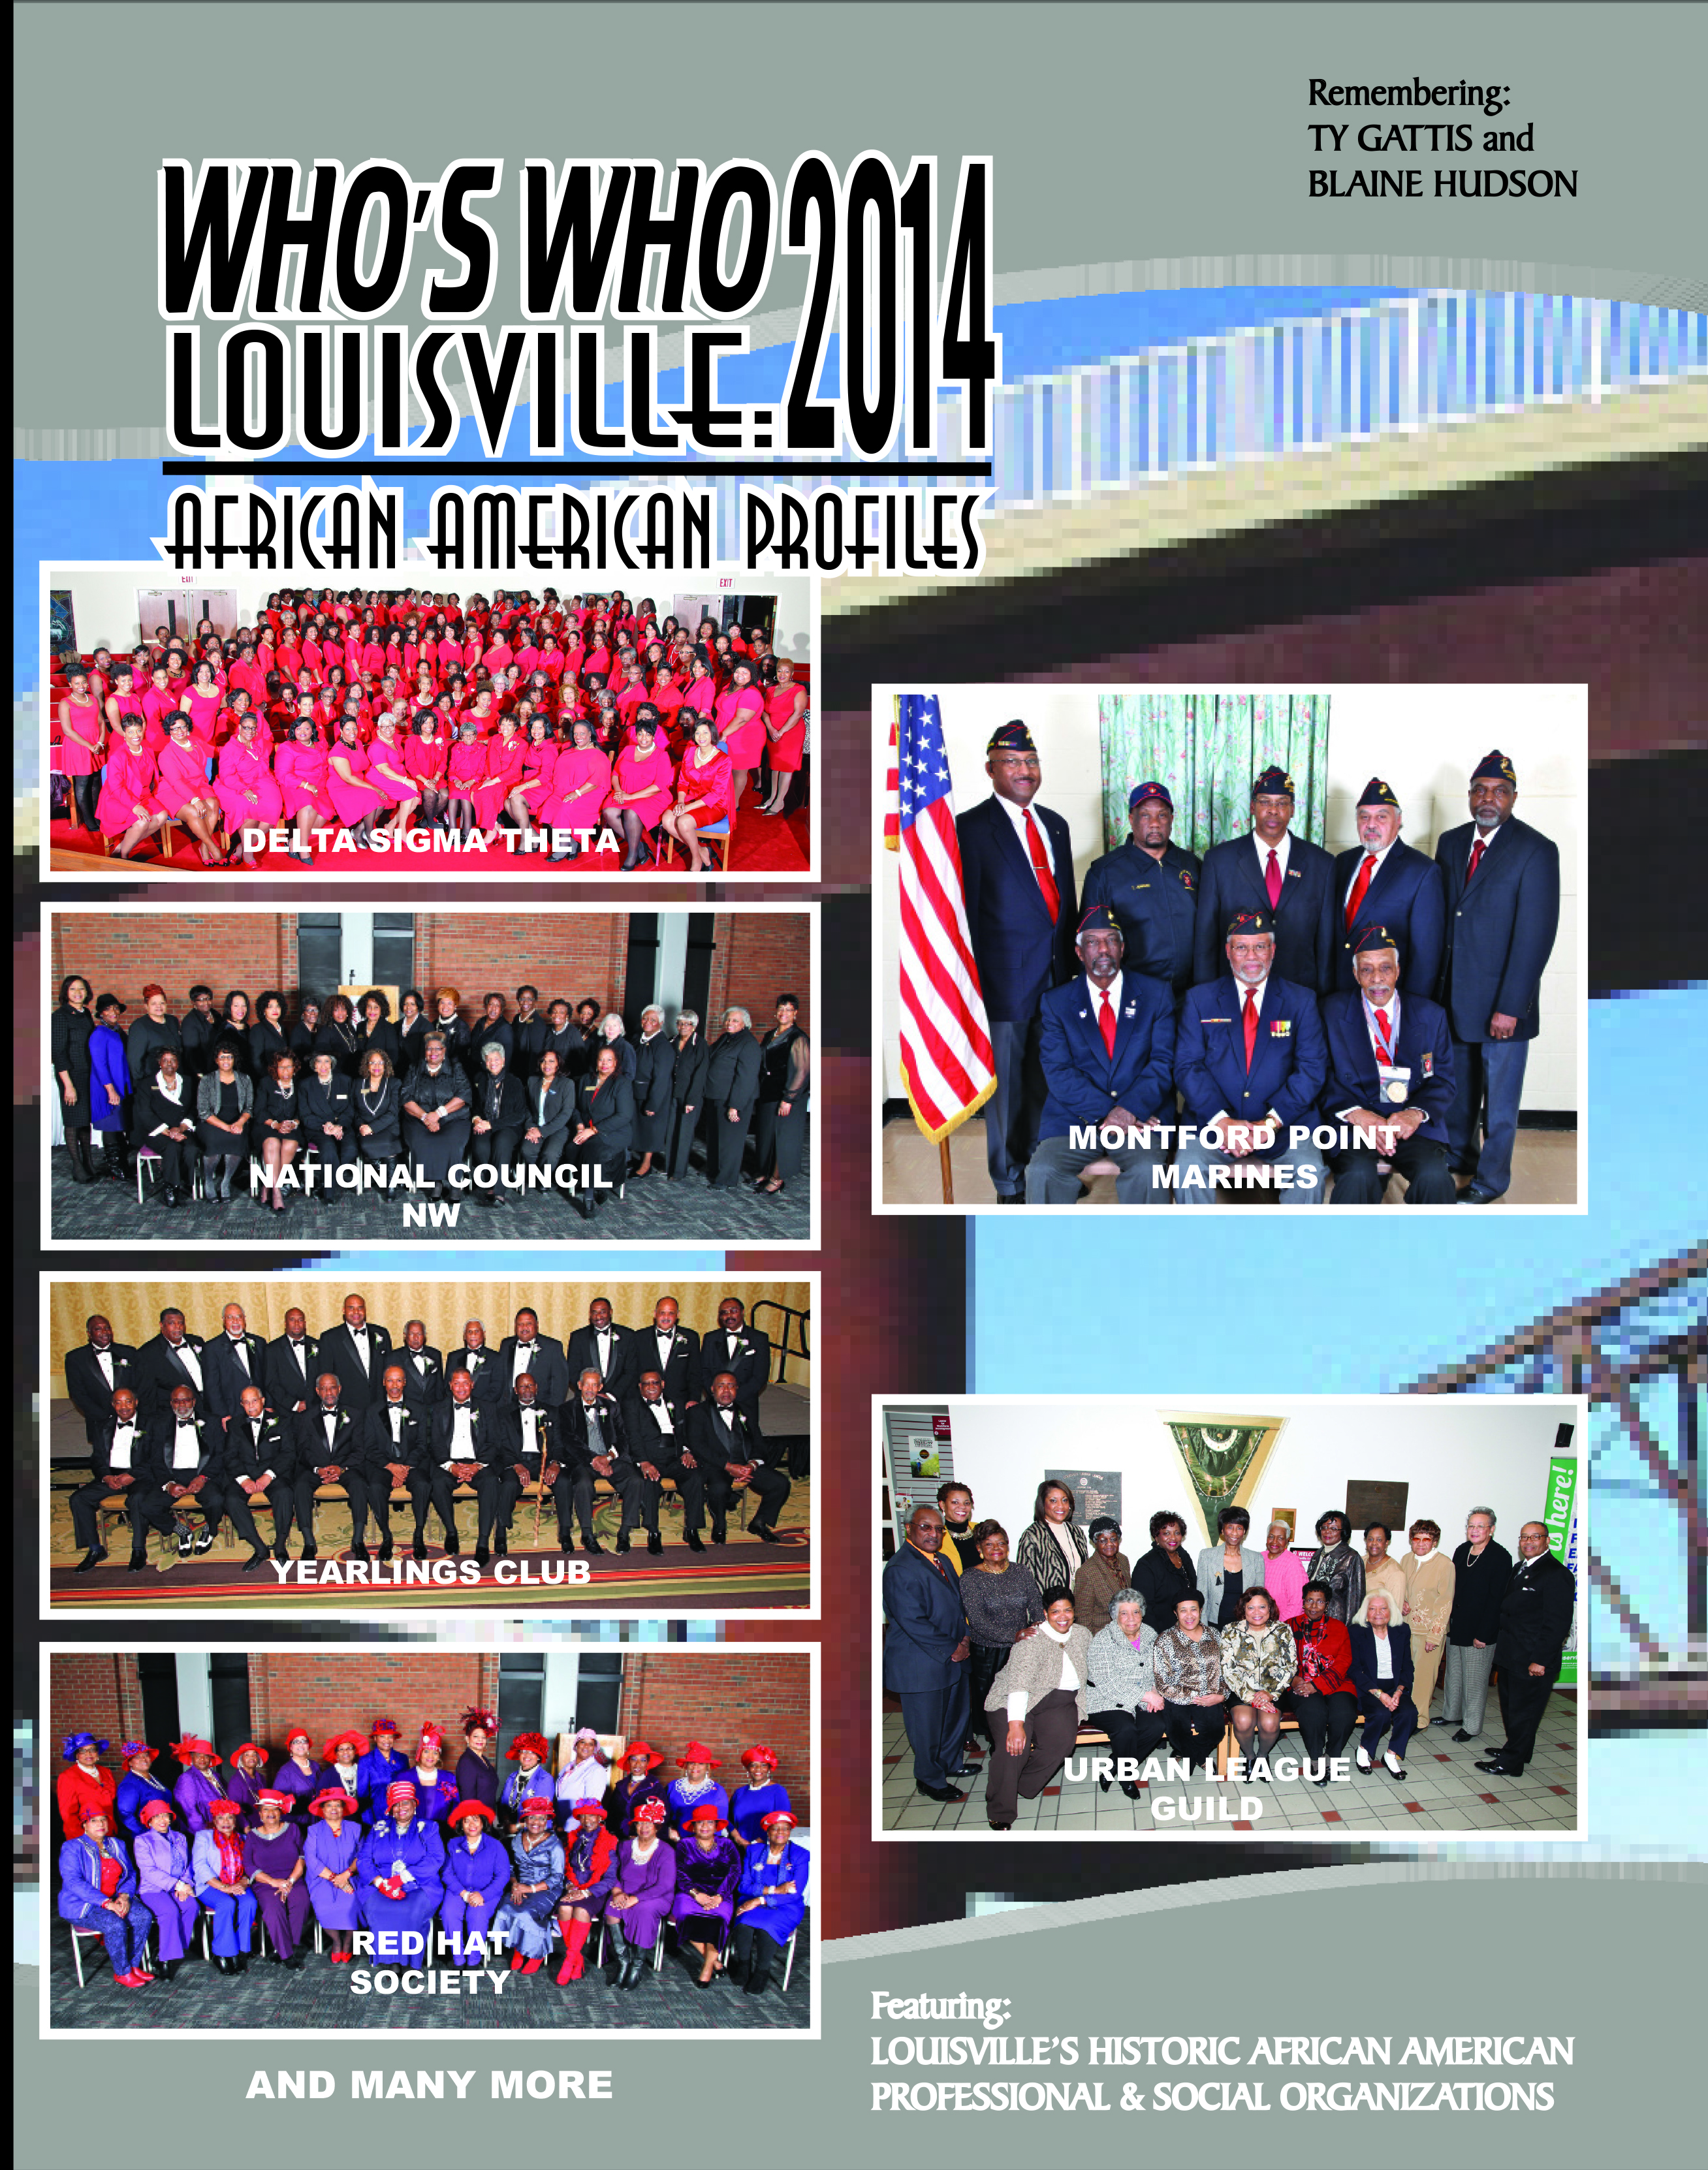 WHO'S WHO LOUISVILLE: 2014